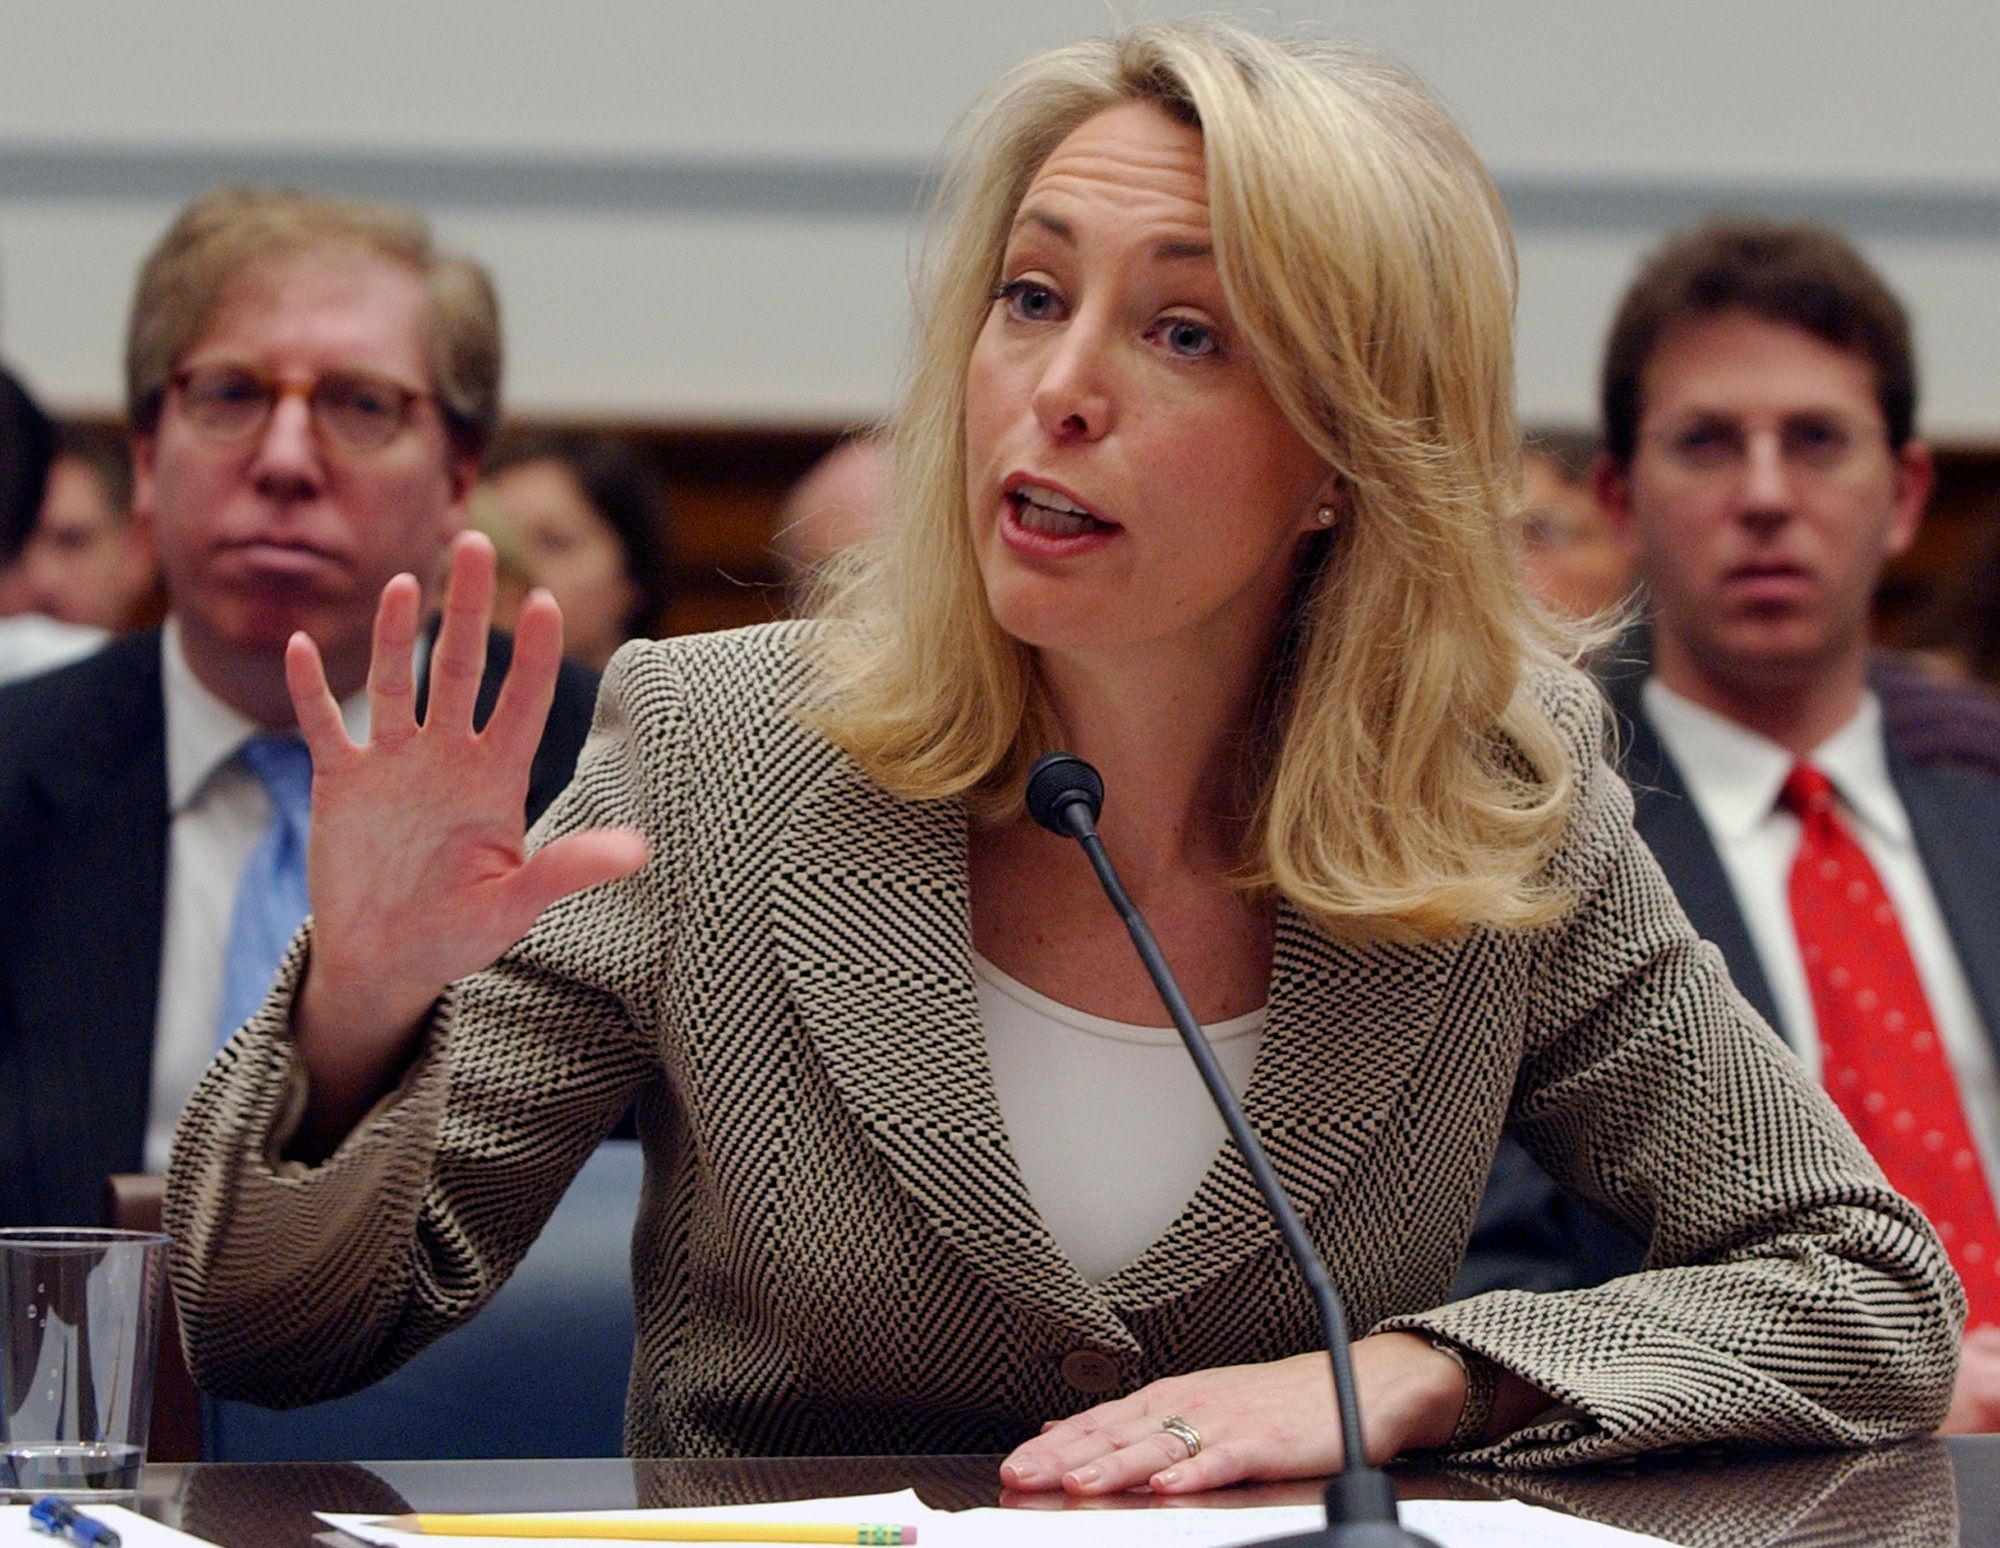 FILE- In this March 16, 2007 file photo, former CIA operative Valerie Plame gestures while testifying on Capitol Hill before the U.S. House Oversight and Government Reform Committee. The former CIA operative told The Associated Press on Friday, April, 5, 2019, she is considering a run for an open U.S. Congressional seat in New Mexico. (AP Photo/Dennis Cook)